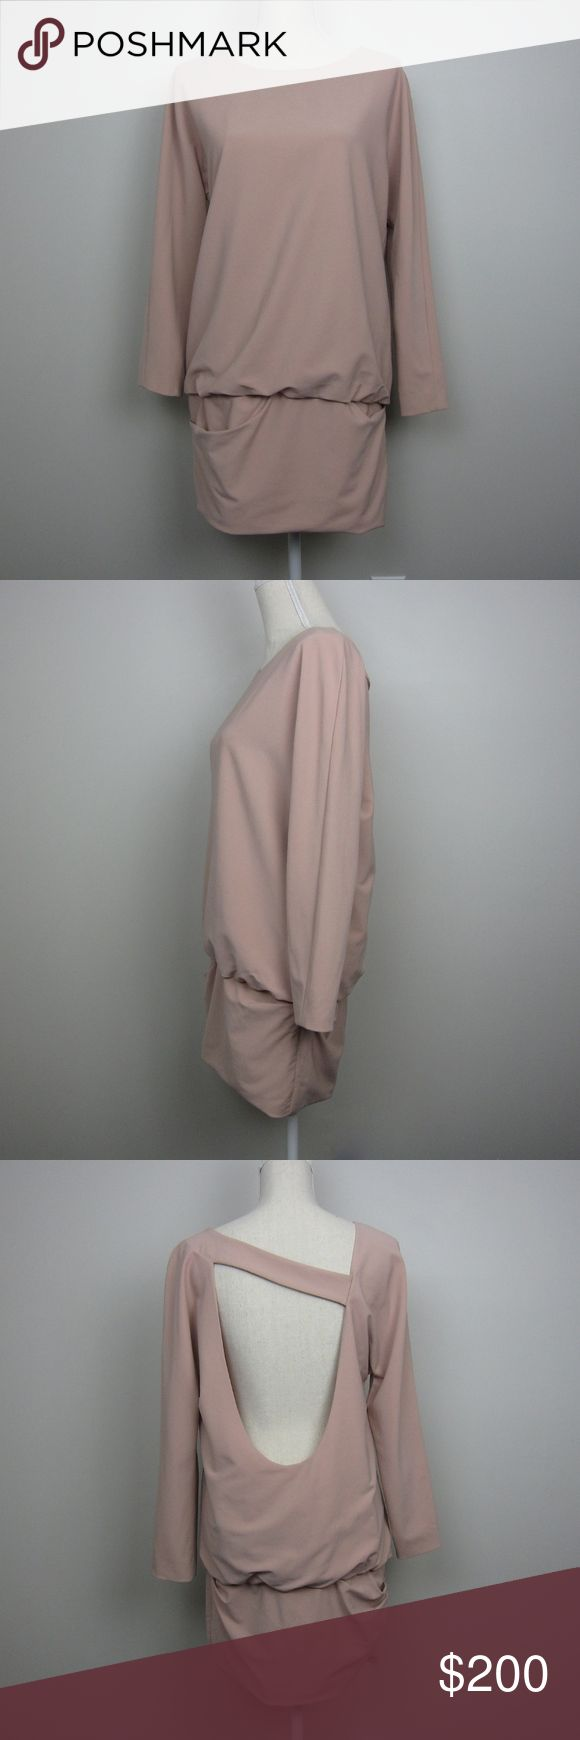 """Jay Ahr for Intermix blush dress Jay Ahr for Intermix blush pink, long dolman sleeve, open back dress. Oversized torso, dropped waist, ruching and fitted at leg. Pullover style. 70% acetate, 30 polyester, lined.  No holes, pilling, fading, small marks, pictured.  Approx. measurements, taken while garment lying flat: Bust: 20"""" Length: 32"""" (from shoulders) Width at bottom: 17.5""""  Offers always welcome :) Jay Ahr Dresses"""